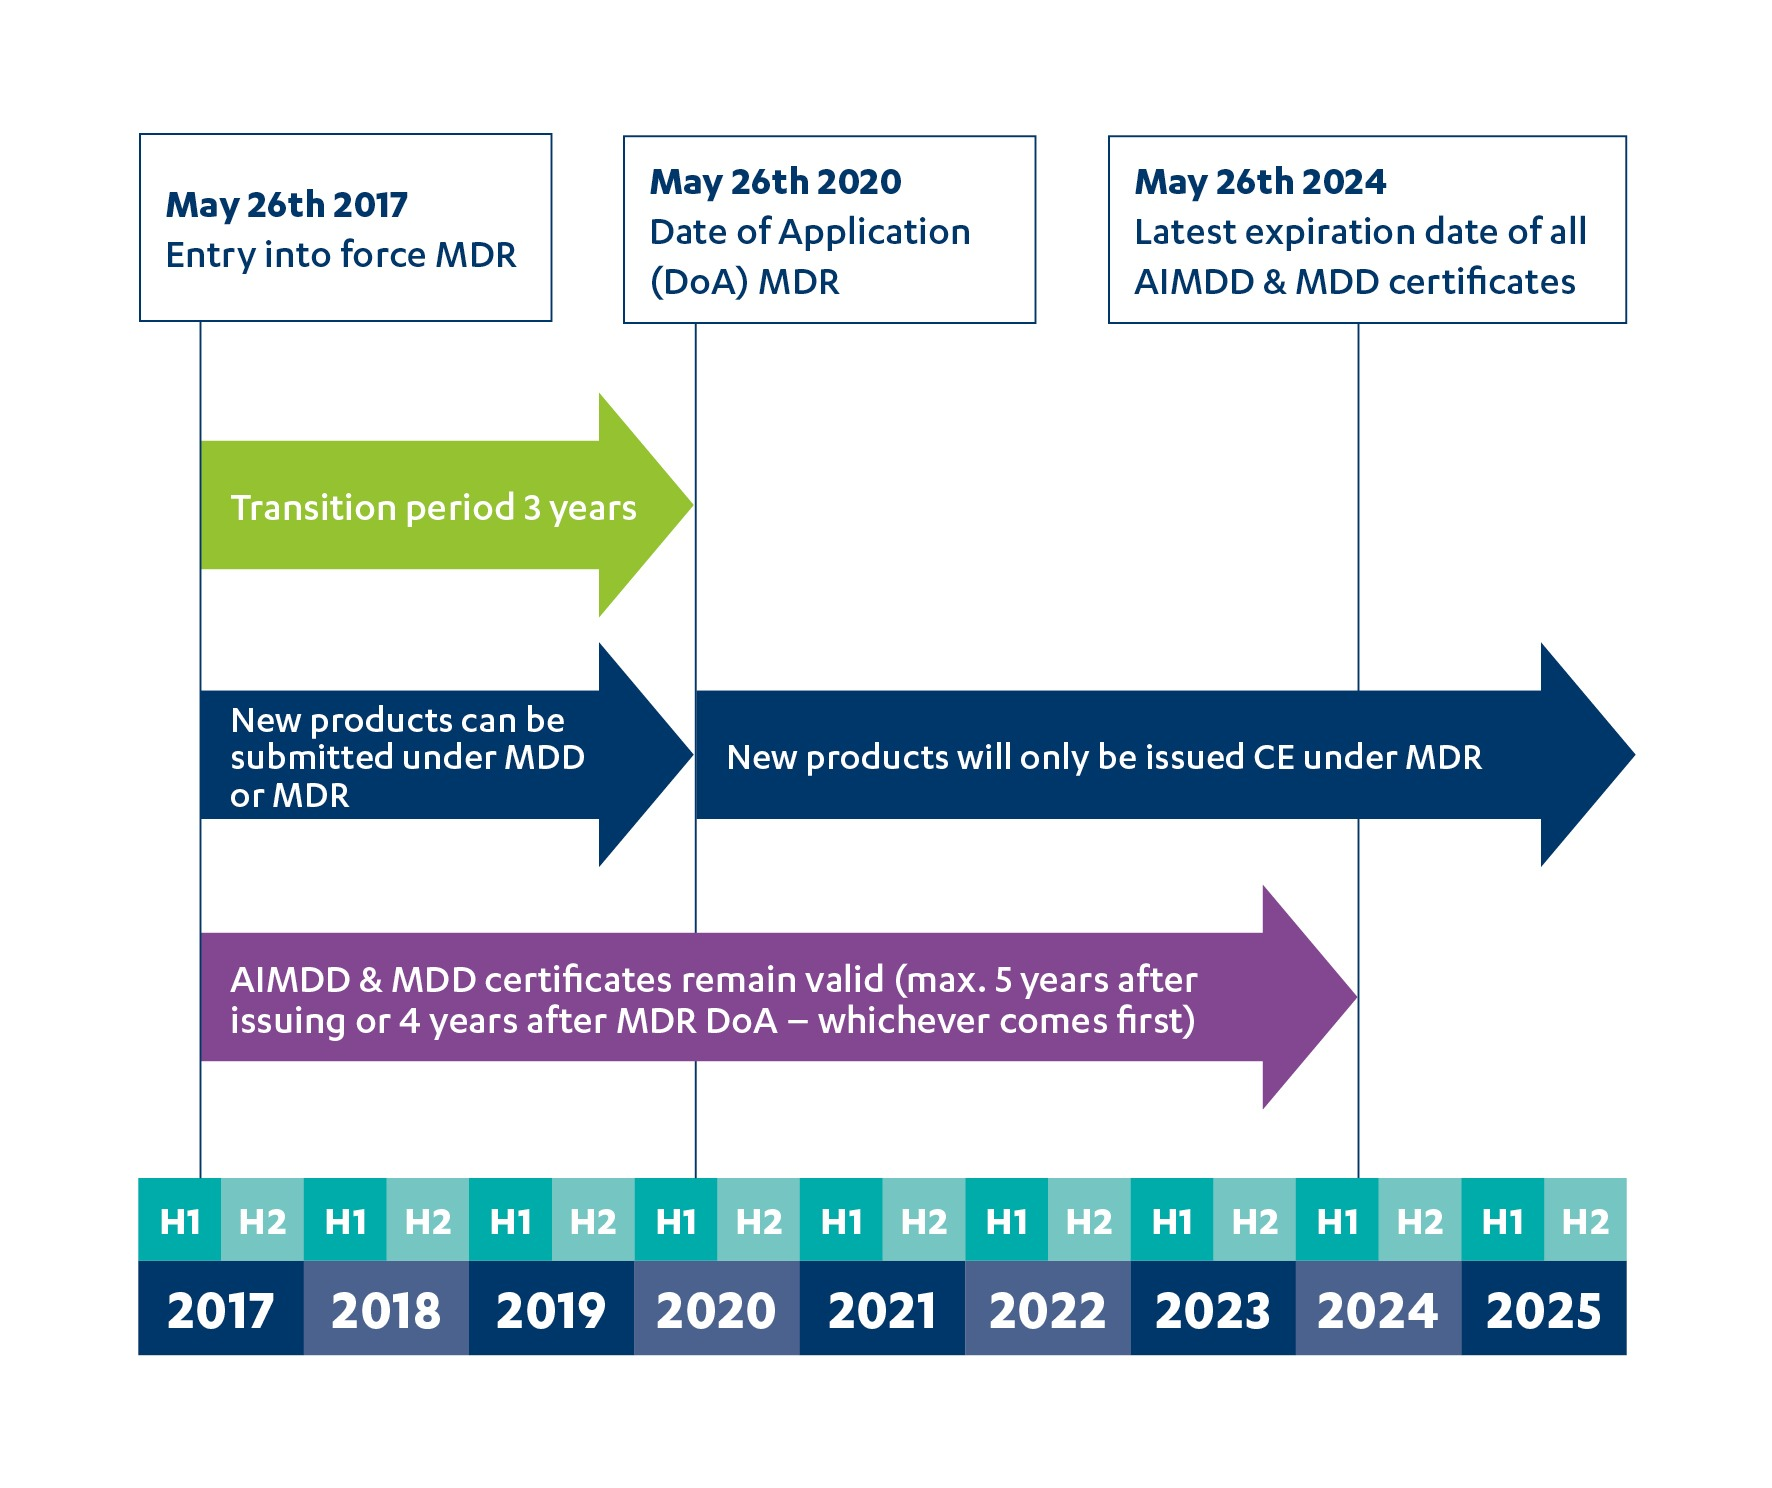 Market introduction of medical devices: MDD or MDR